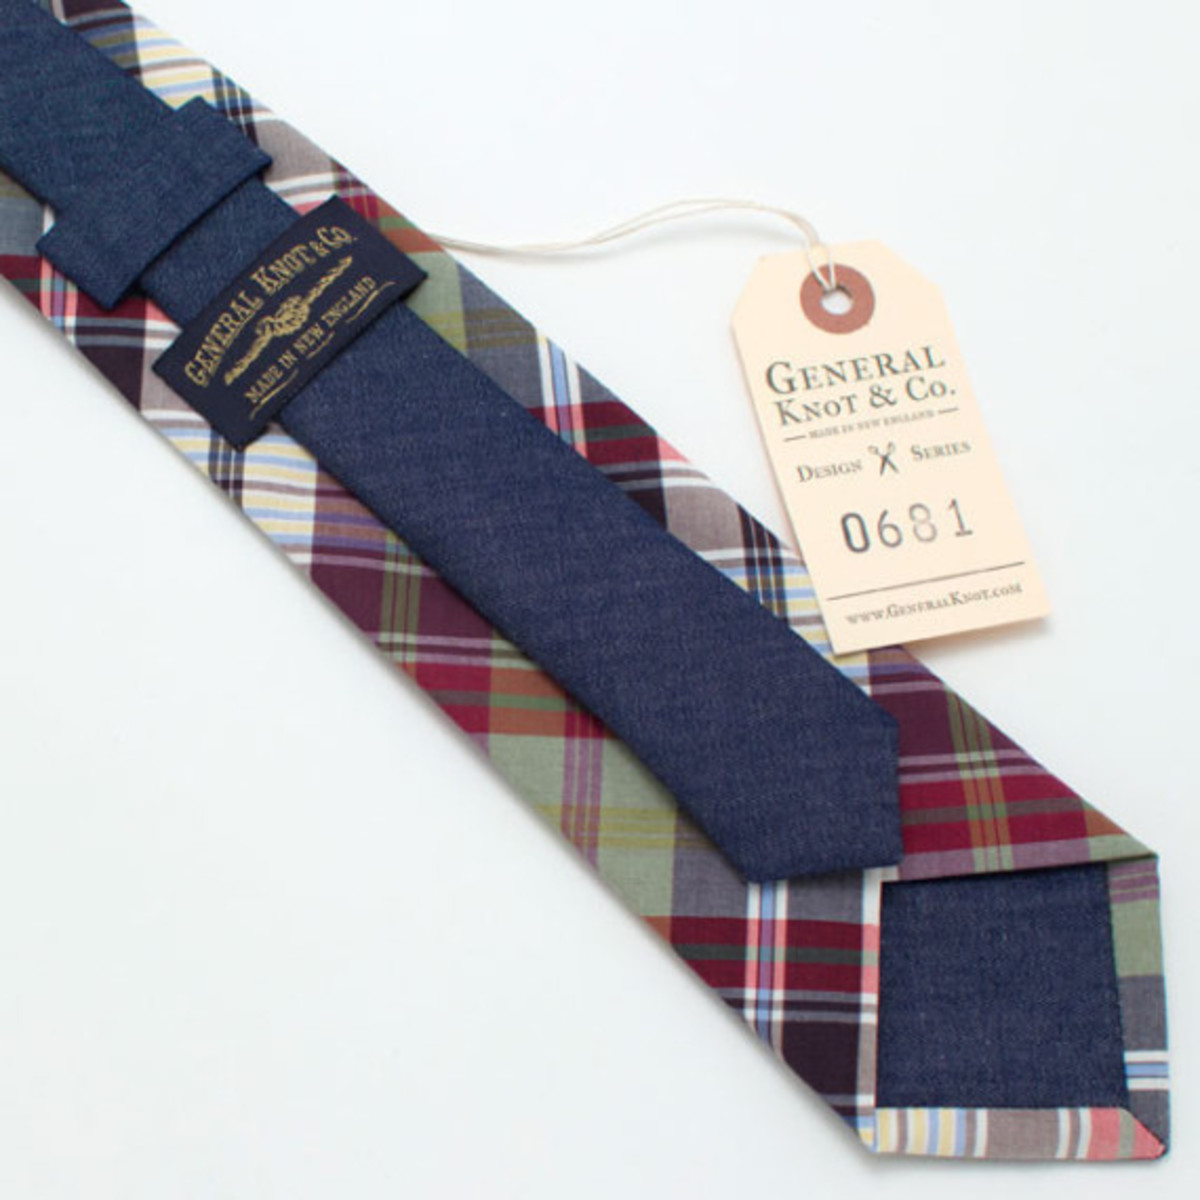 general-knot-and-co-portland-family-neckwear-collection-04